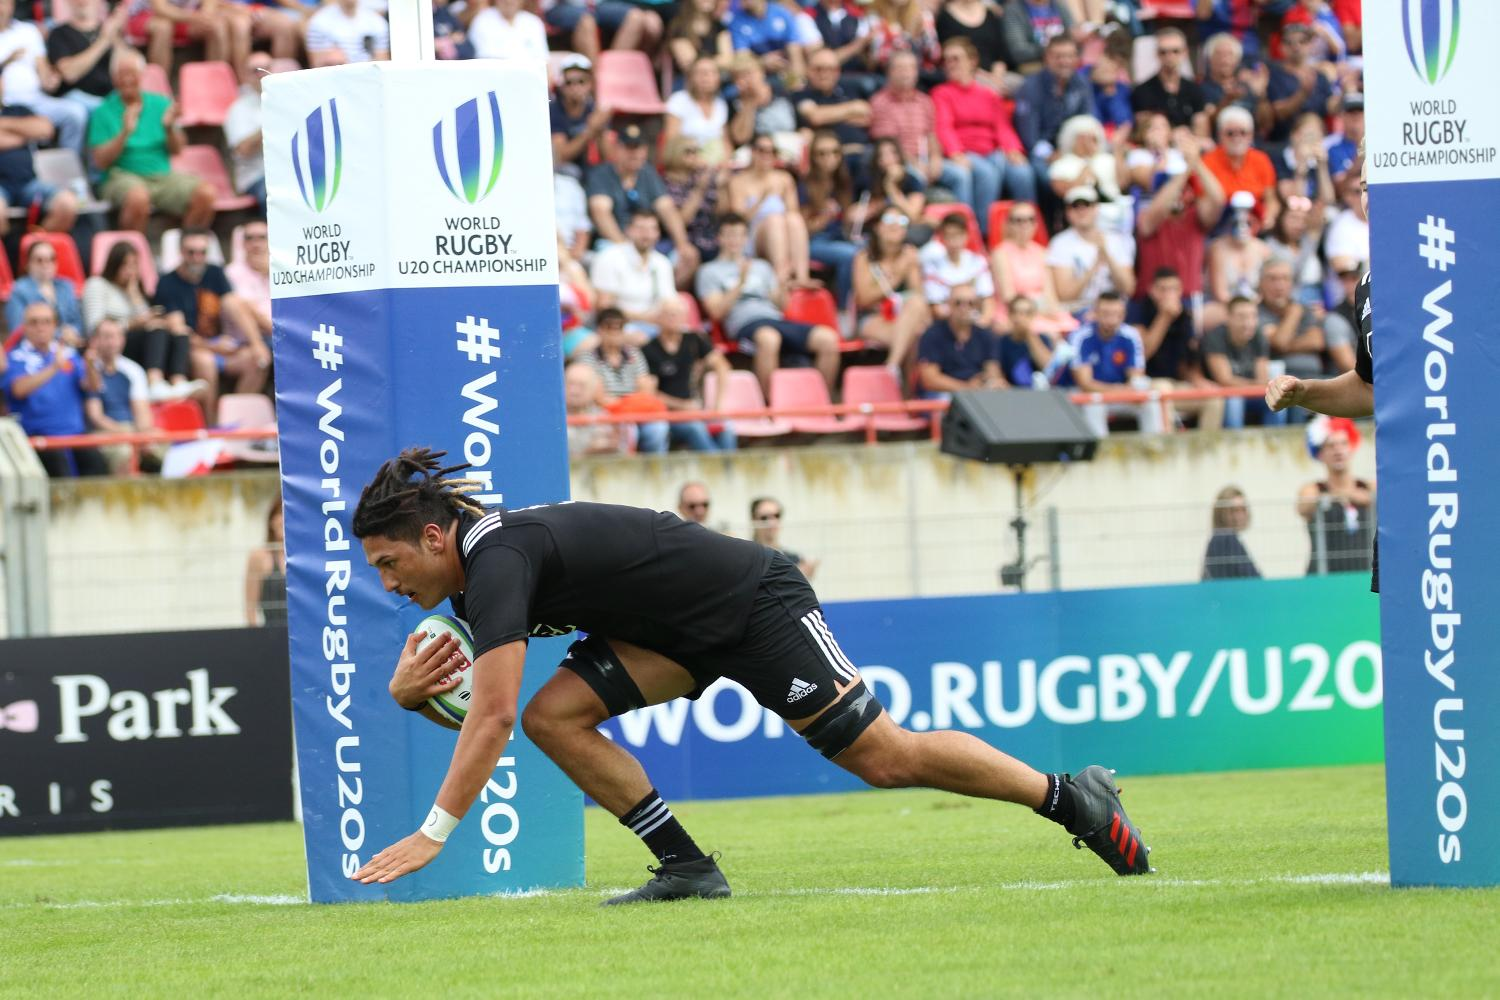 World Rugby U20 Championship 2018: Third place play-off - South Africa v New Zealand